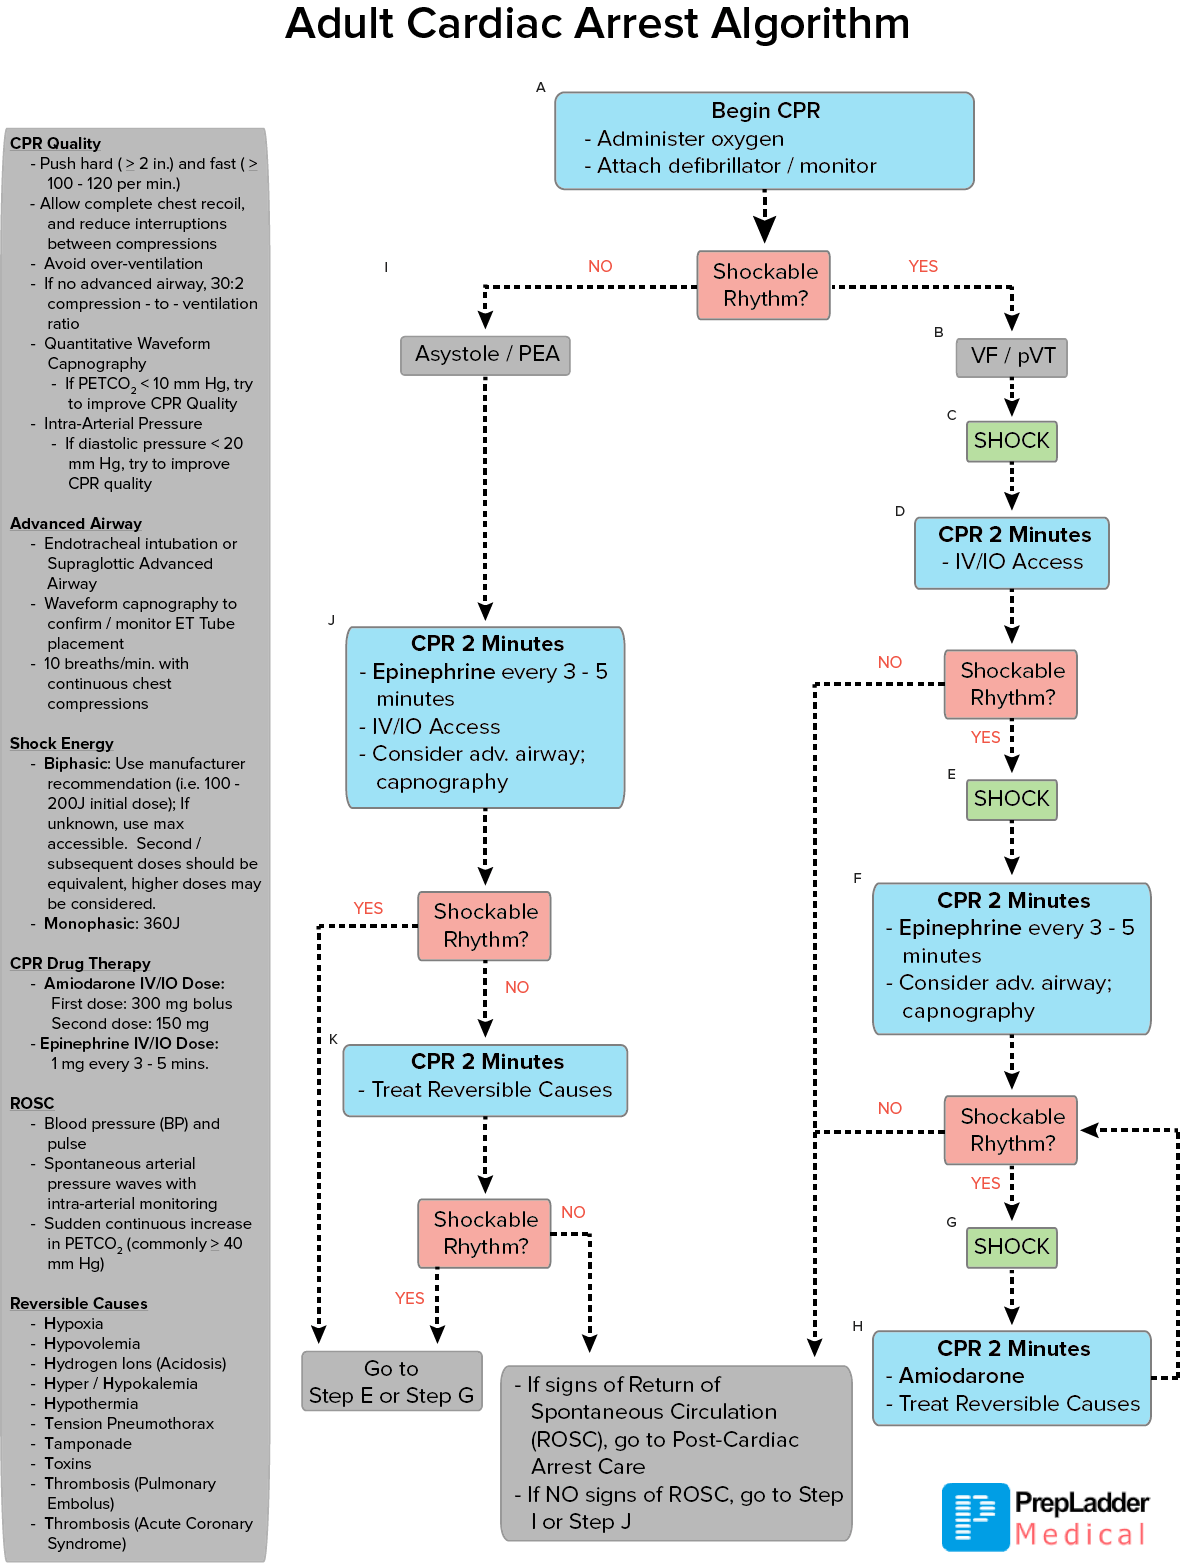 Acls algorithm adult cardiac arrest refer the flowchart mentioned below to have an even more detailed step by step description of the adult cardiac arrest algorithm nvjuhfo Gallery